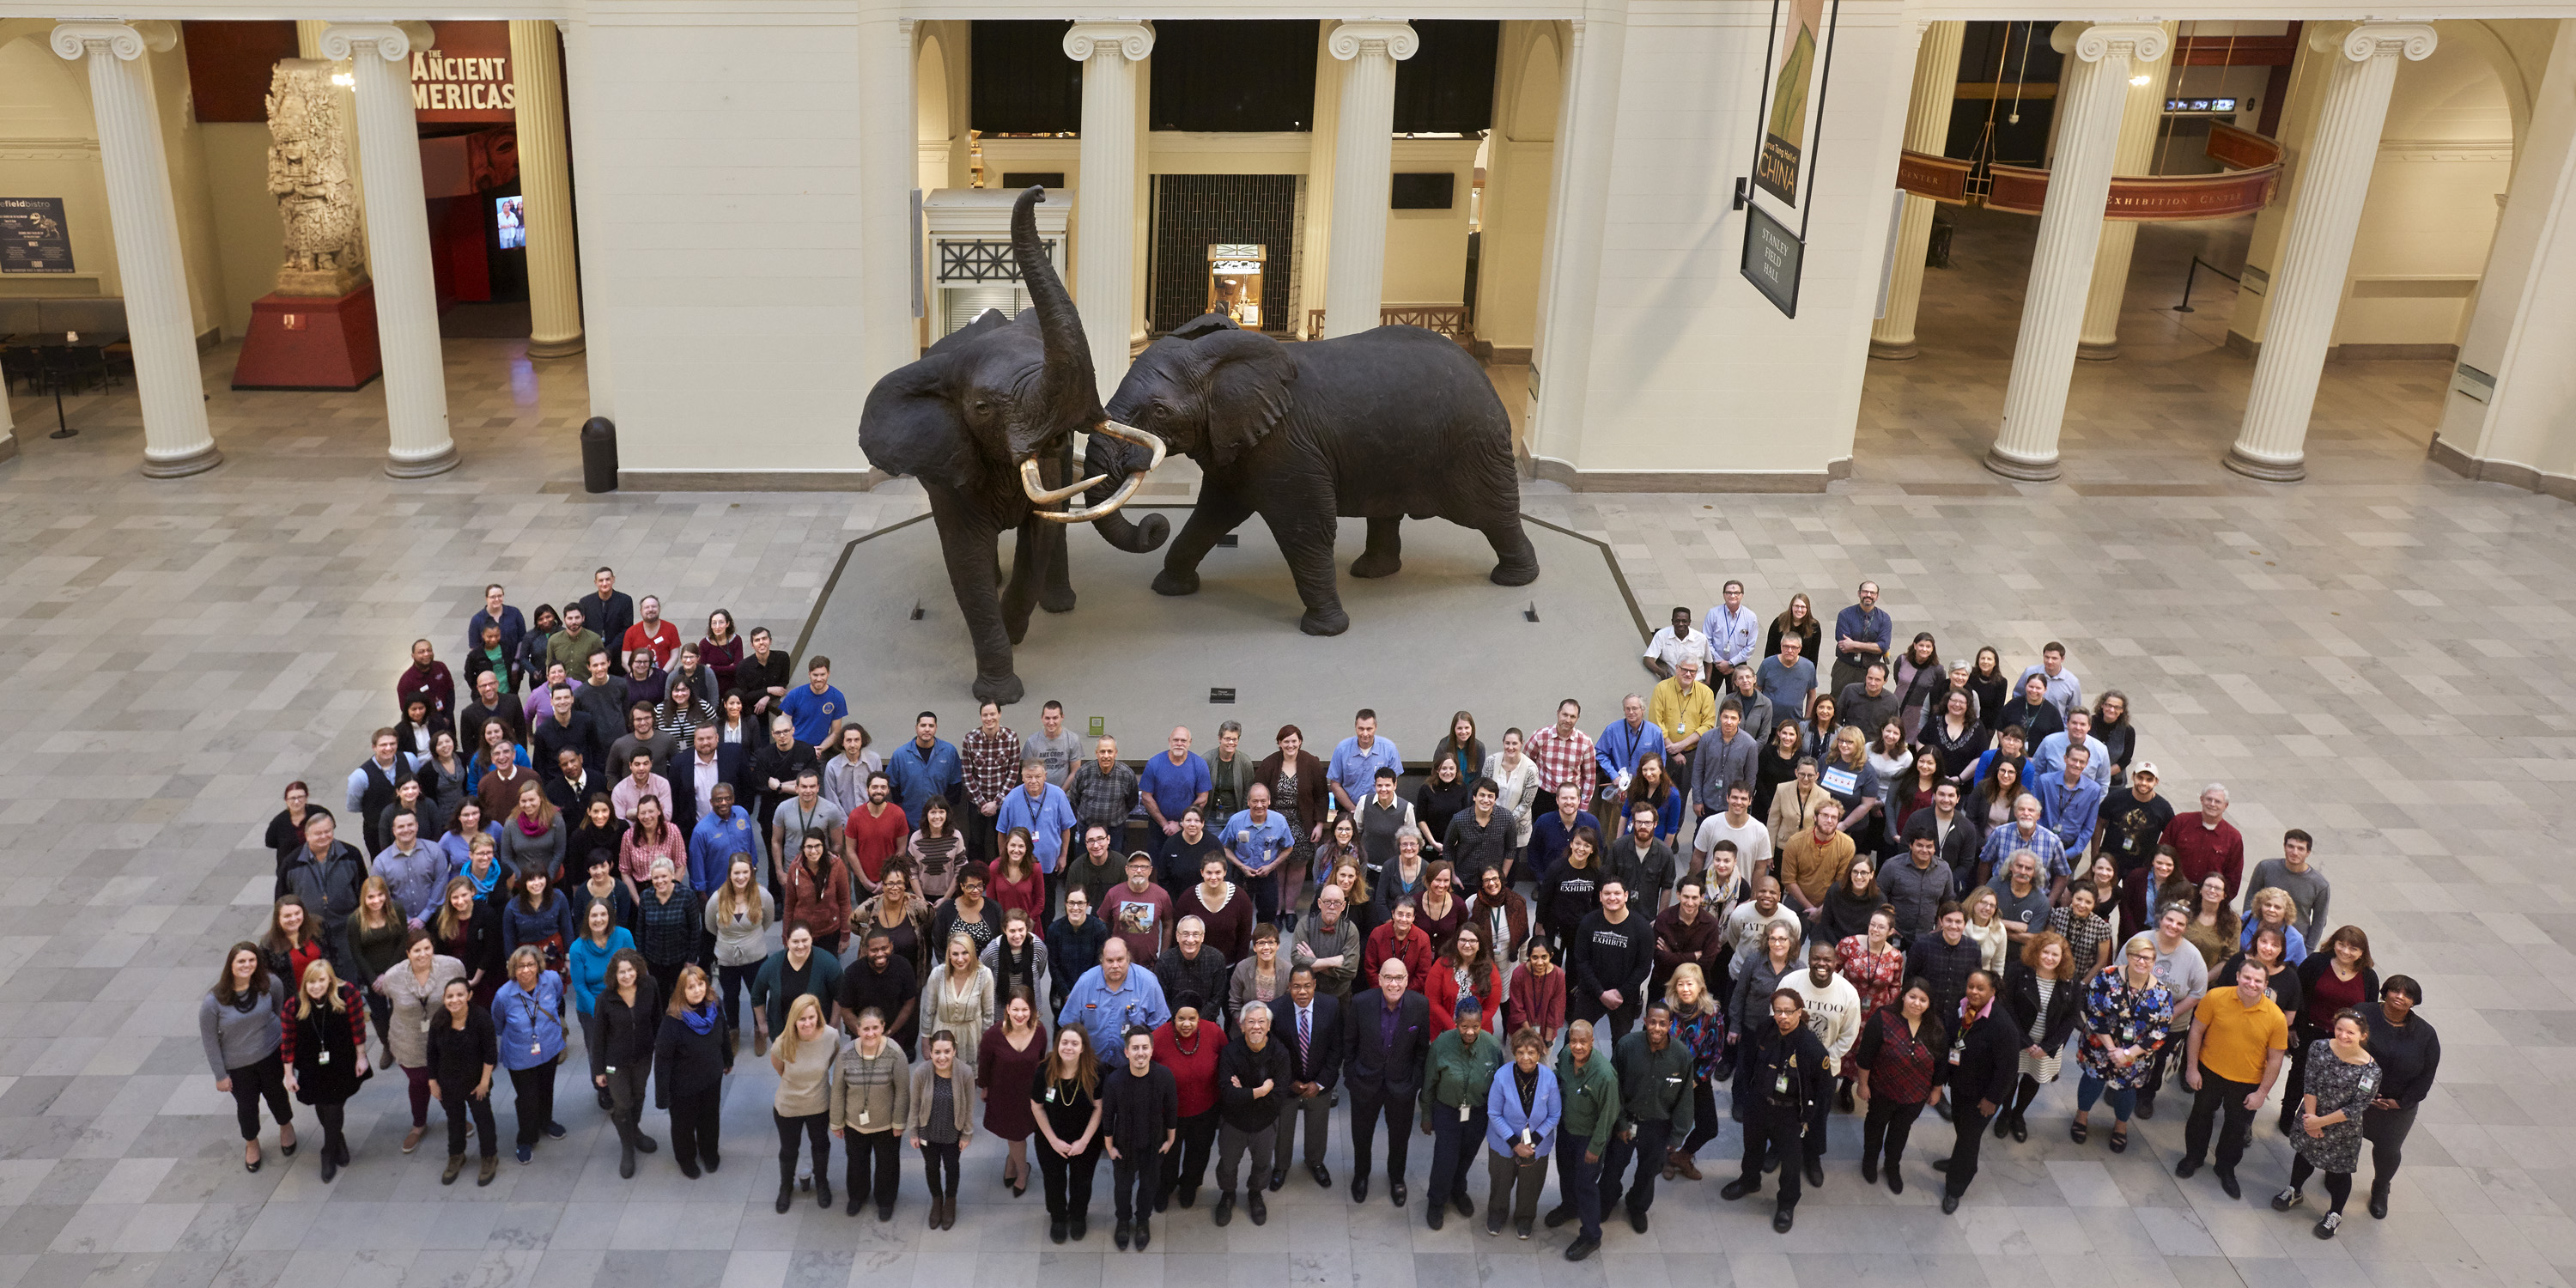 Image of a large group of people in front of taxadermied elephants taken from above